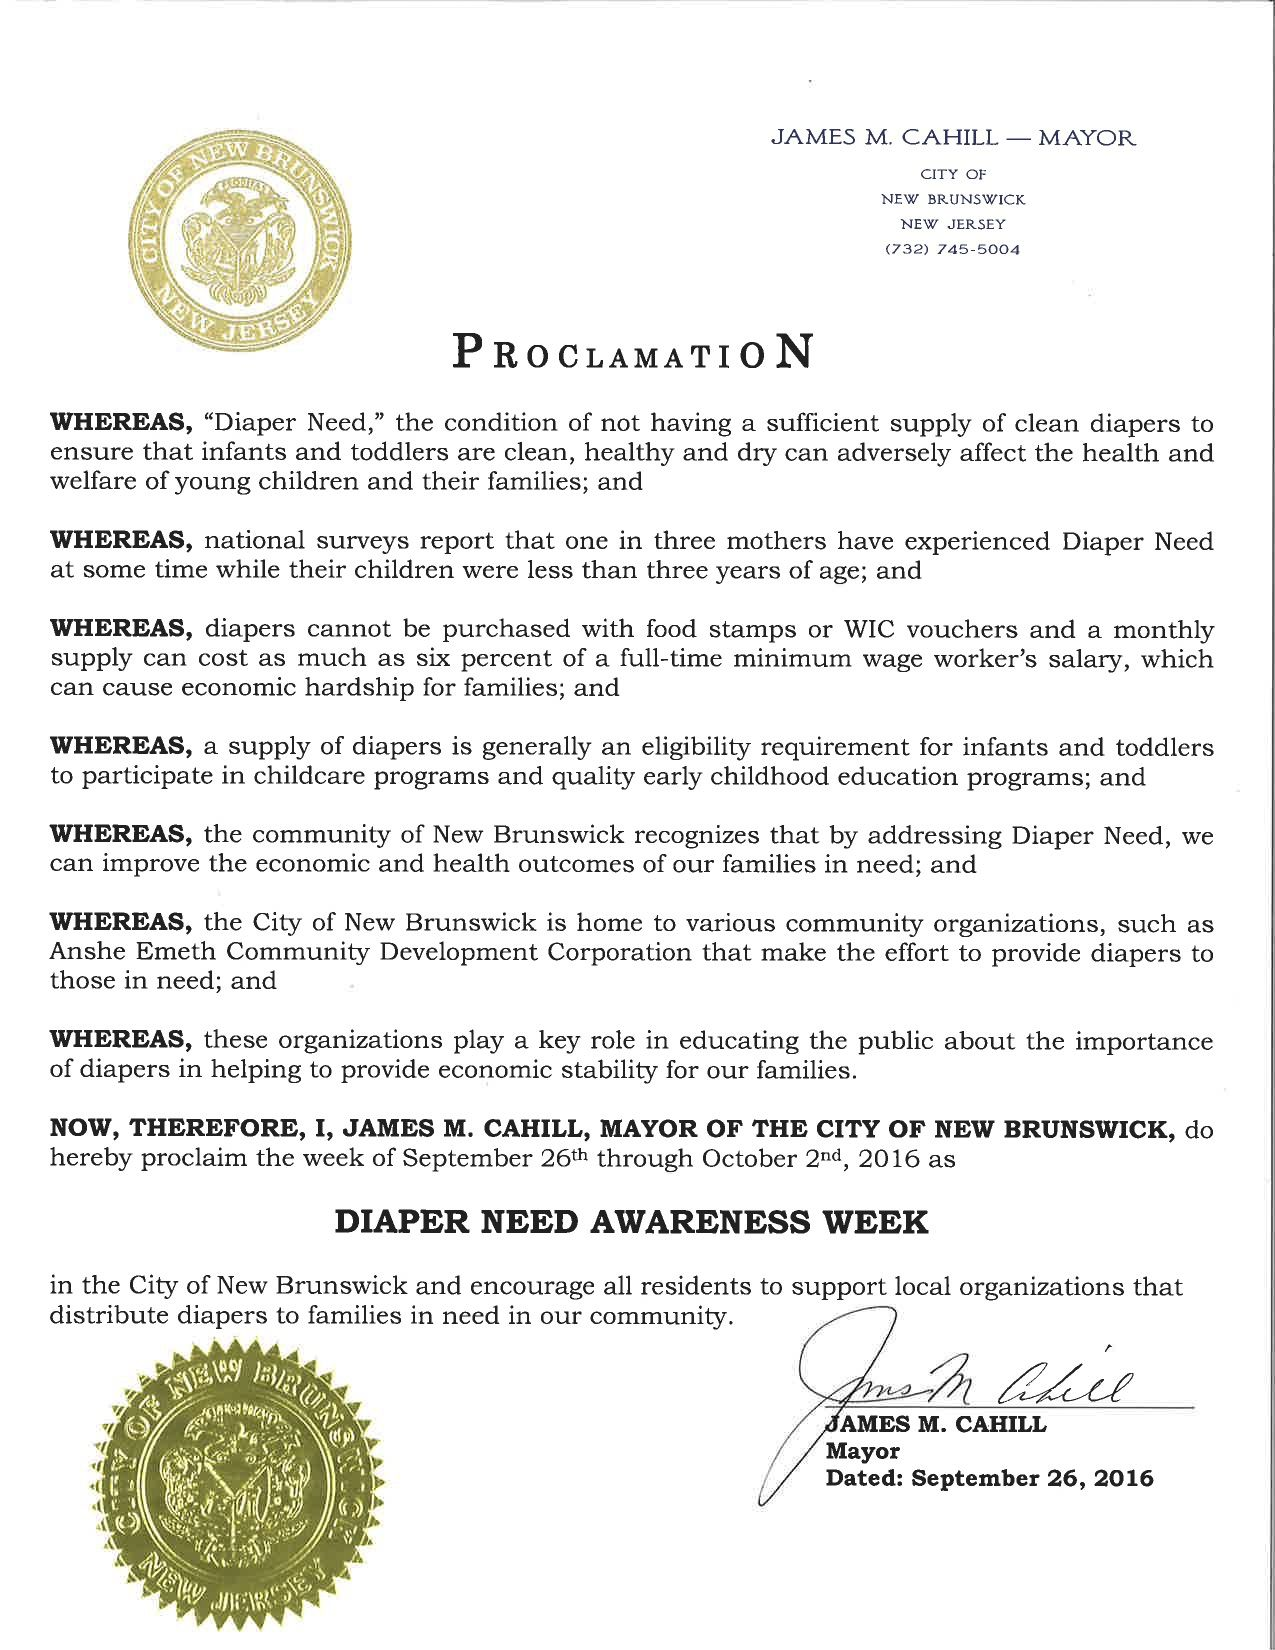 New Brunswick, NJ - Mayoral proclamation recognizing Diaper Need Awareness Week (Sept. 26 - Oct. 2, 2016) #DiaperNeed www.diaperneed.org